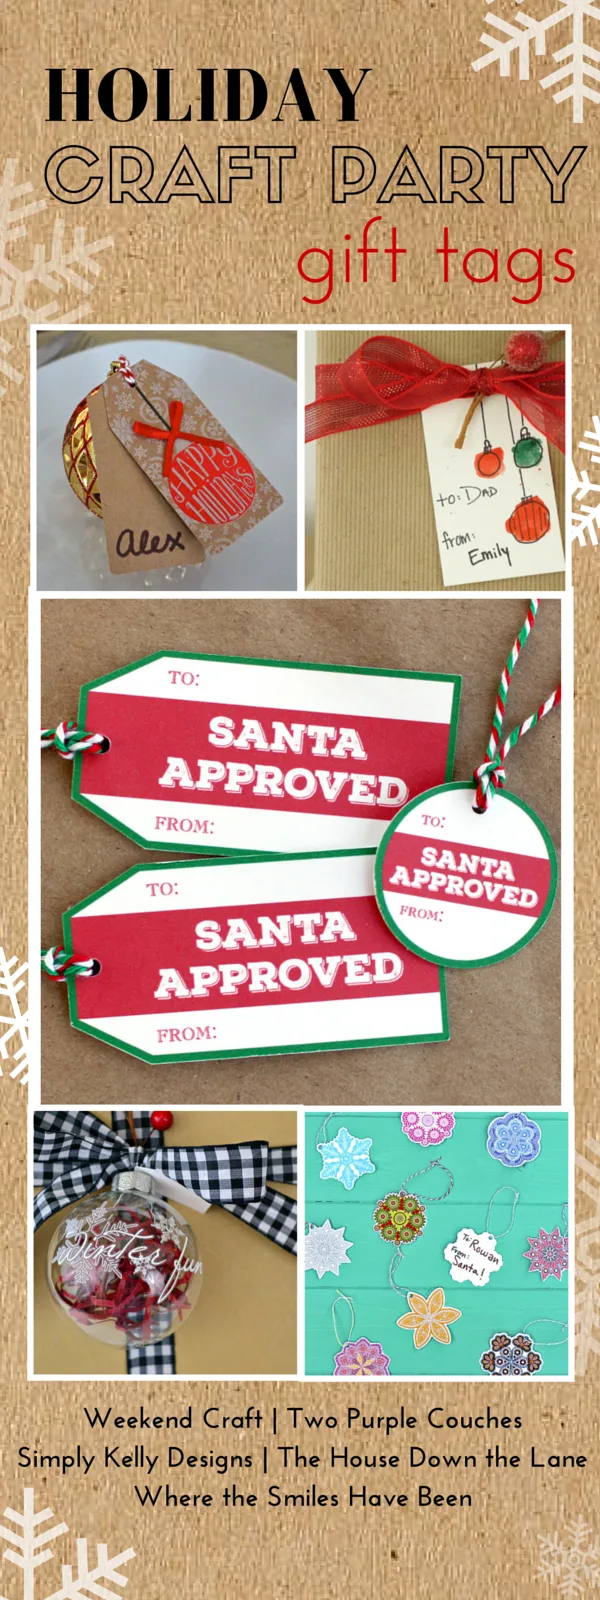 Holiday Craft Party! Day 2: Gift Tags, plus an AMAZING Giveaway! | Where The Smiles Have Been